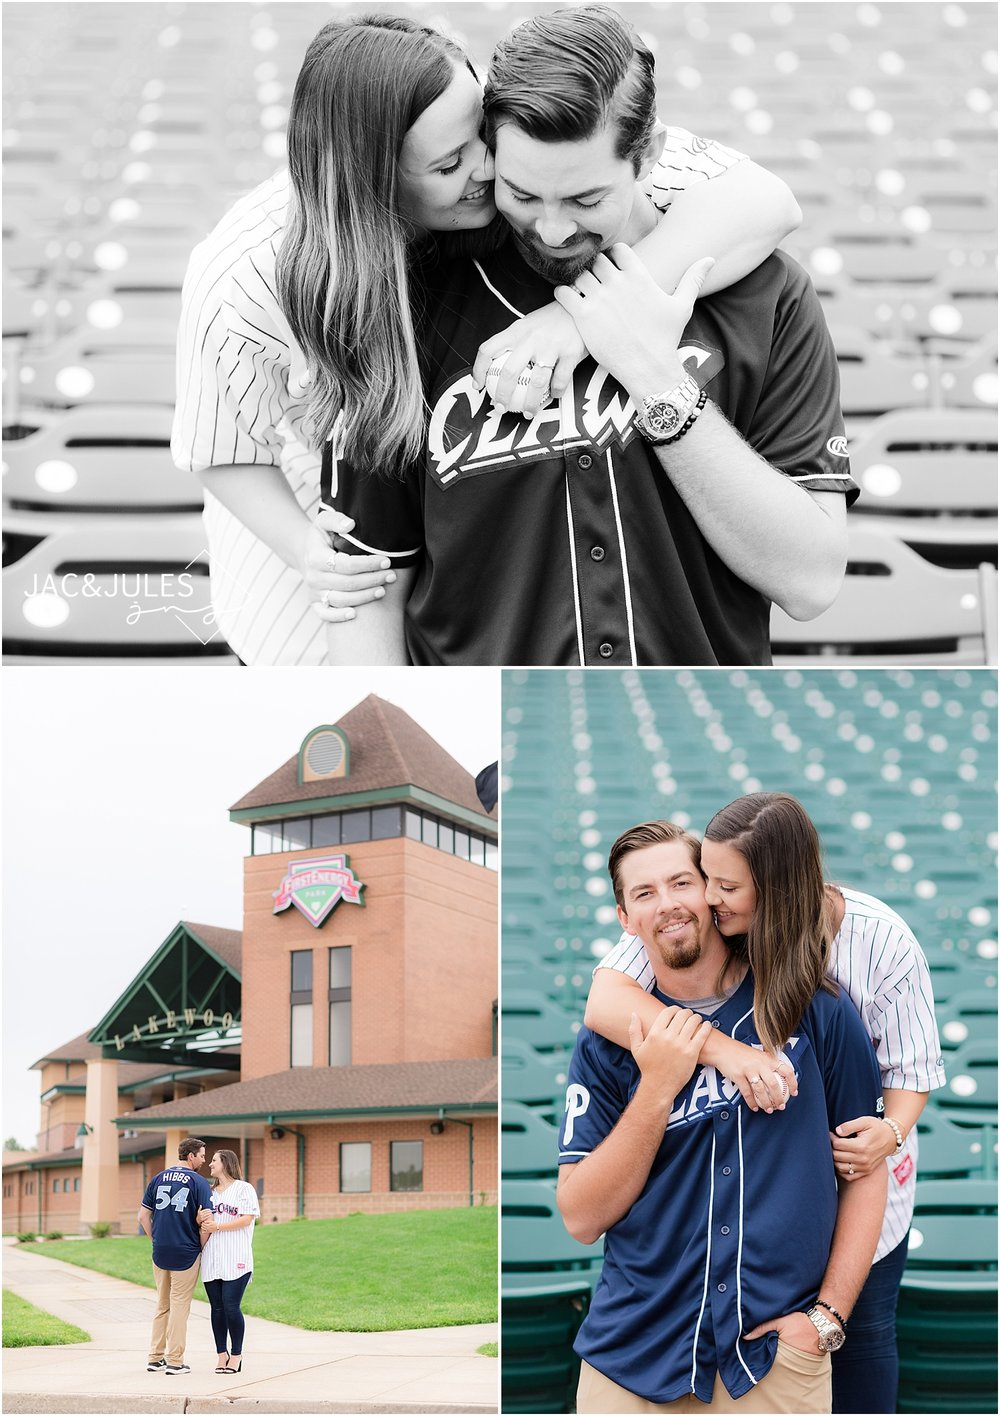 engagement photos at a baseball field in nj